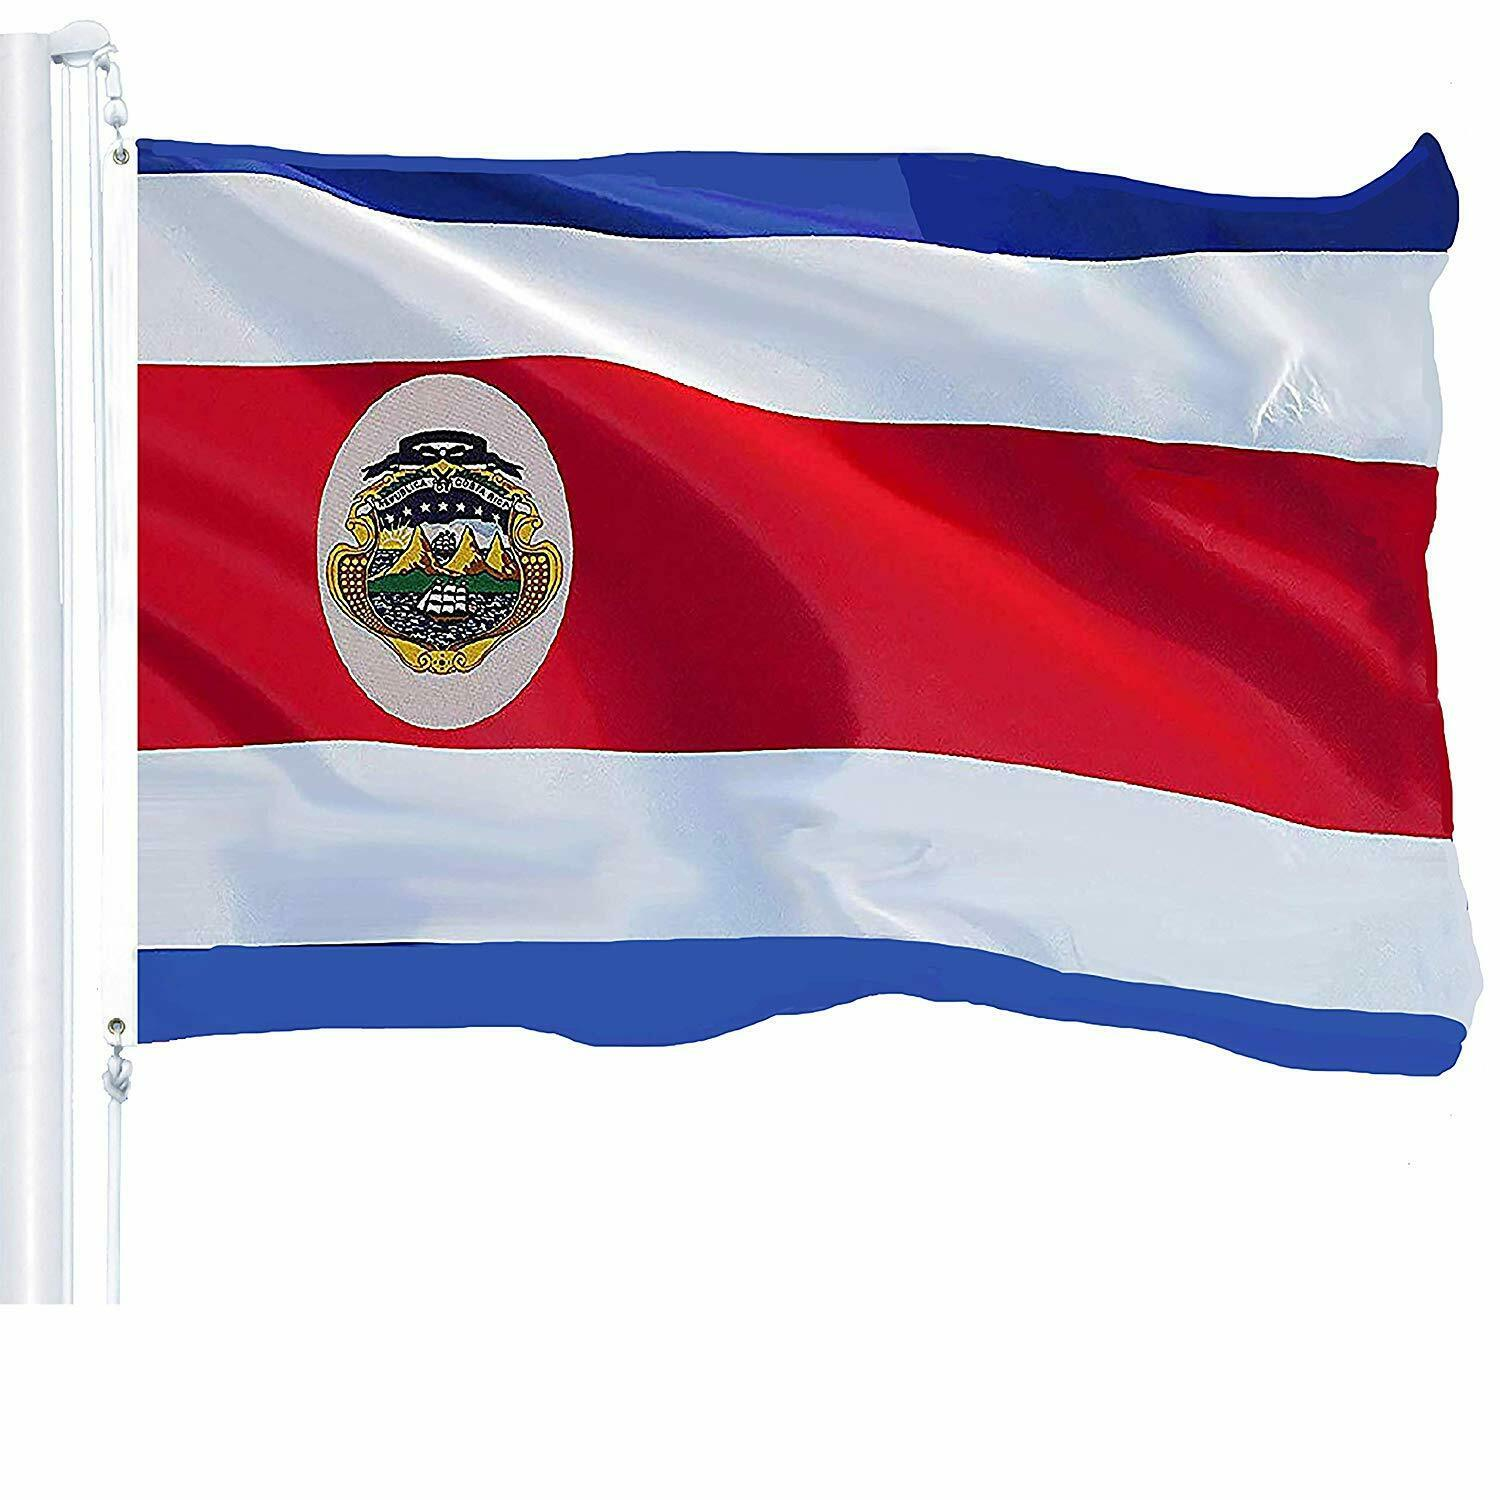 G128 - 3x5ft Costa Rica flag Rican Banner Grommets 150D Poly